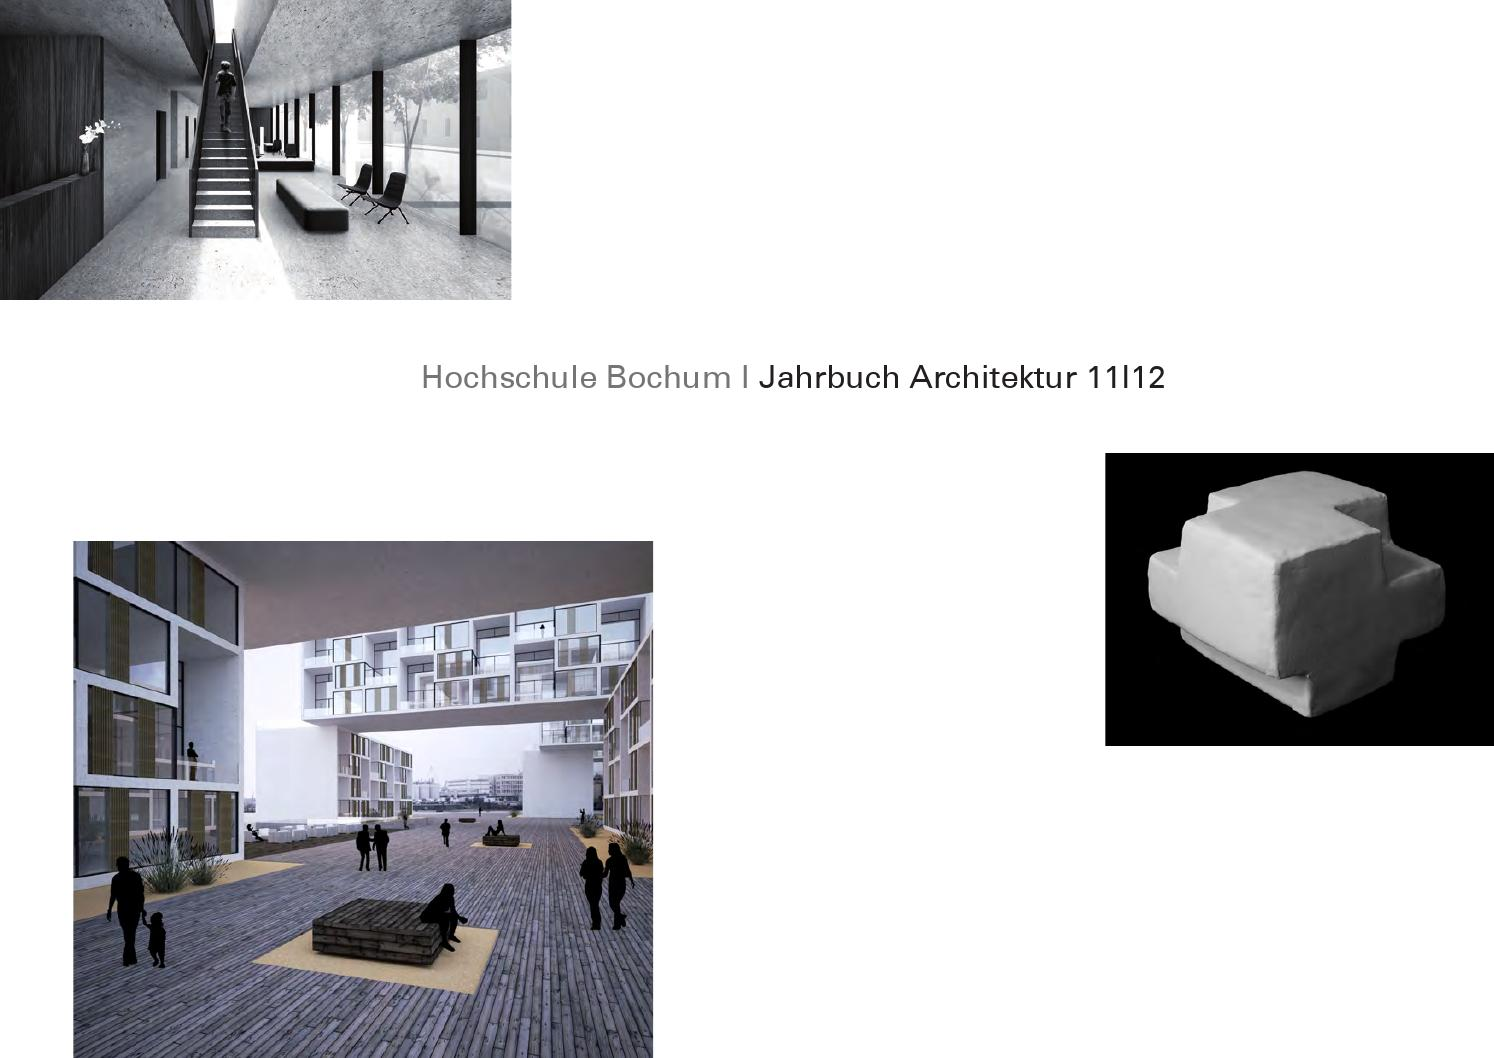 Jahrbuch Architektur HS Bochum 2012 by harald gatermann - issuu